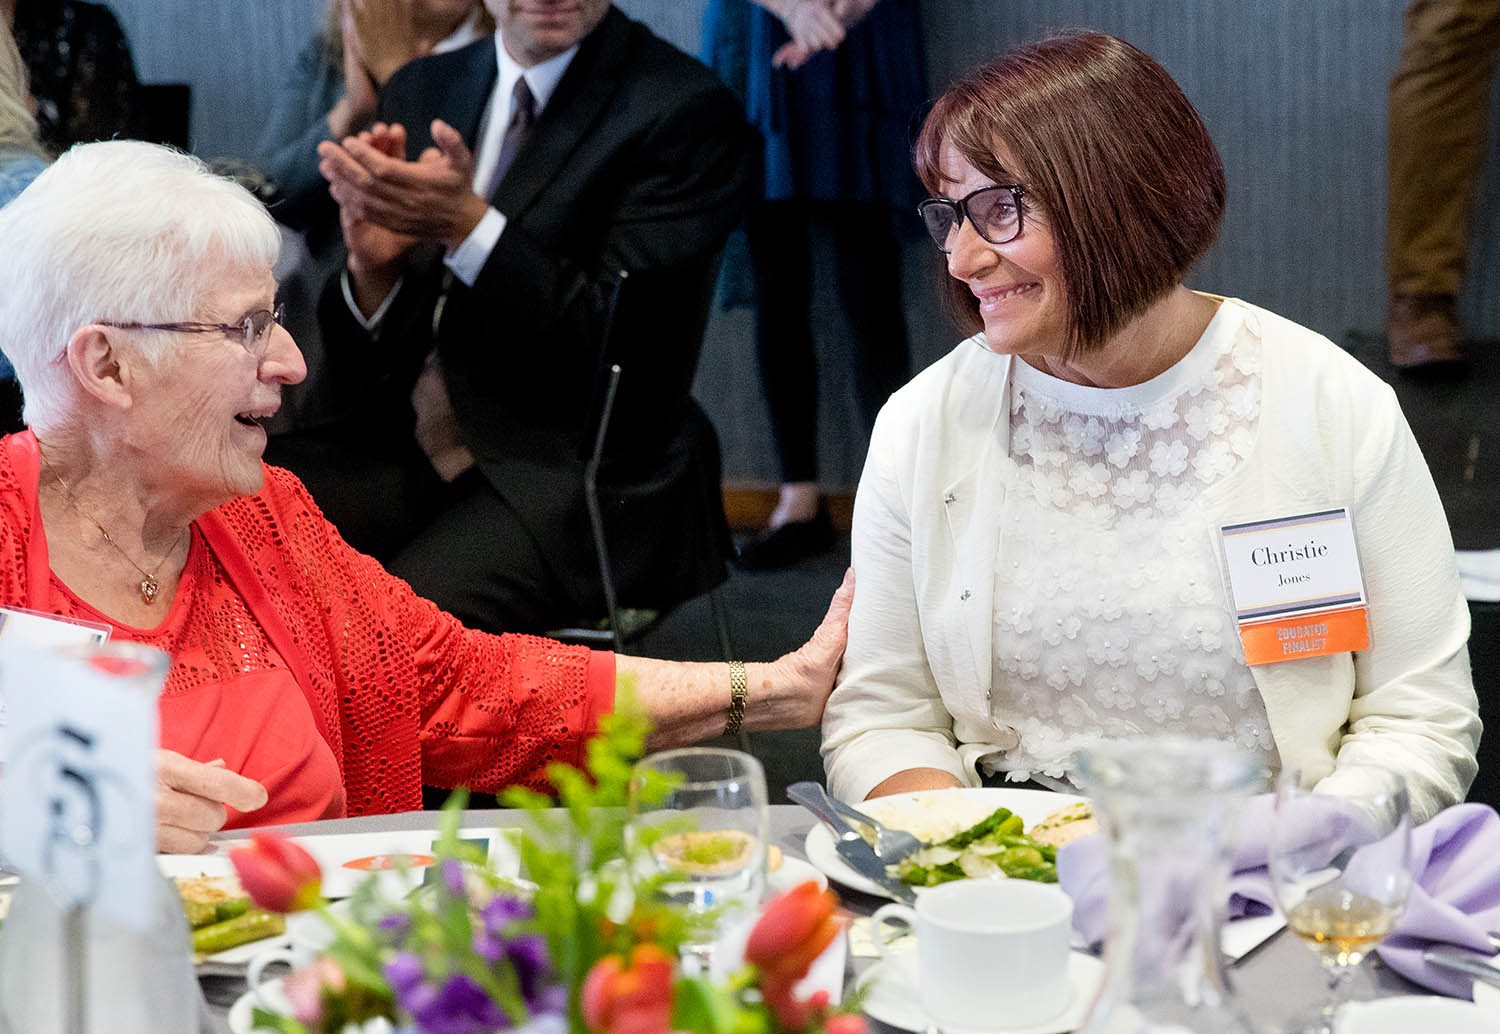 Frances Ryan, left, smiles at her niece Christie Jones, an eighth grade writing, literature, and AVID teacher at Lincoln Magnet School, after she was named the 2019 Horace Mann Educator of the Year during a ceremony Tuesday, May 7, 2019. Jones credits Ryan as being the inspiration for her teaching career. [Ted Schurter/The State Journal-Register]